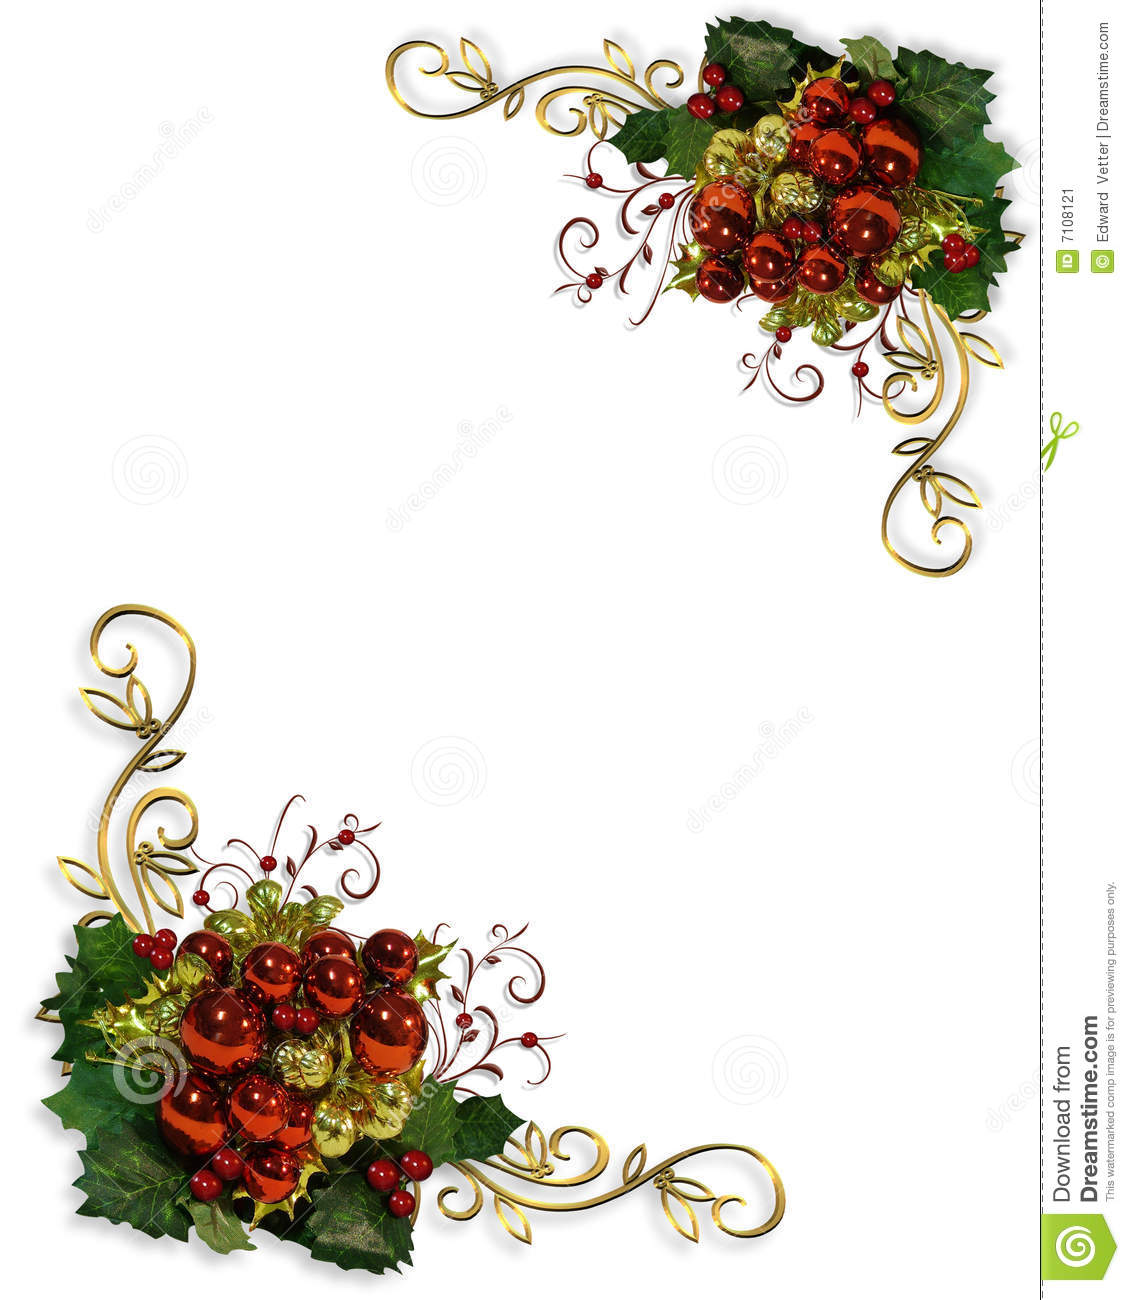 Victorian Christmas Borders Clipart Clipart Suggest